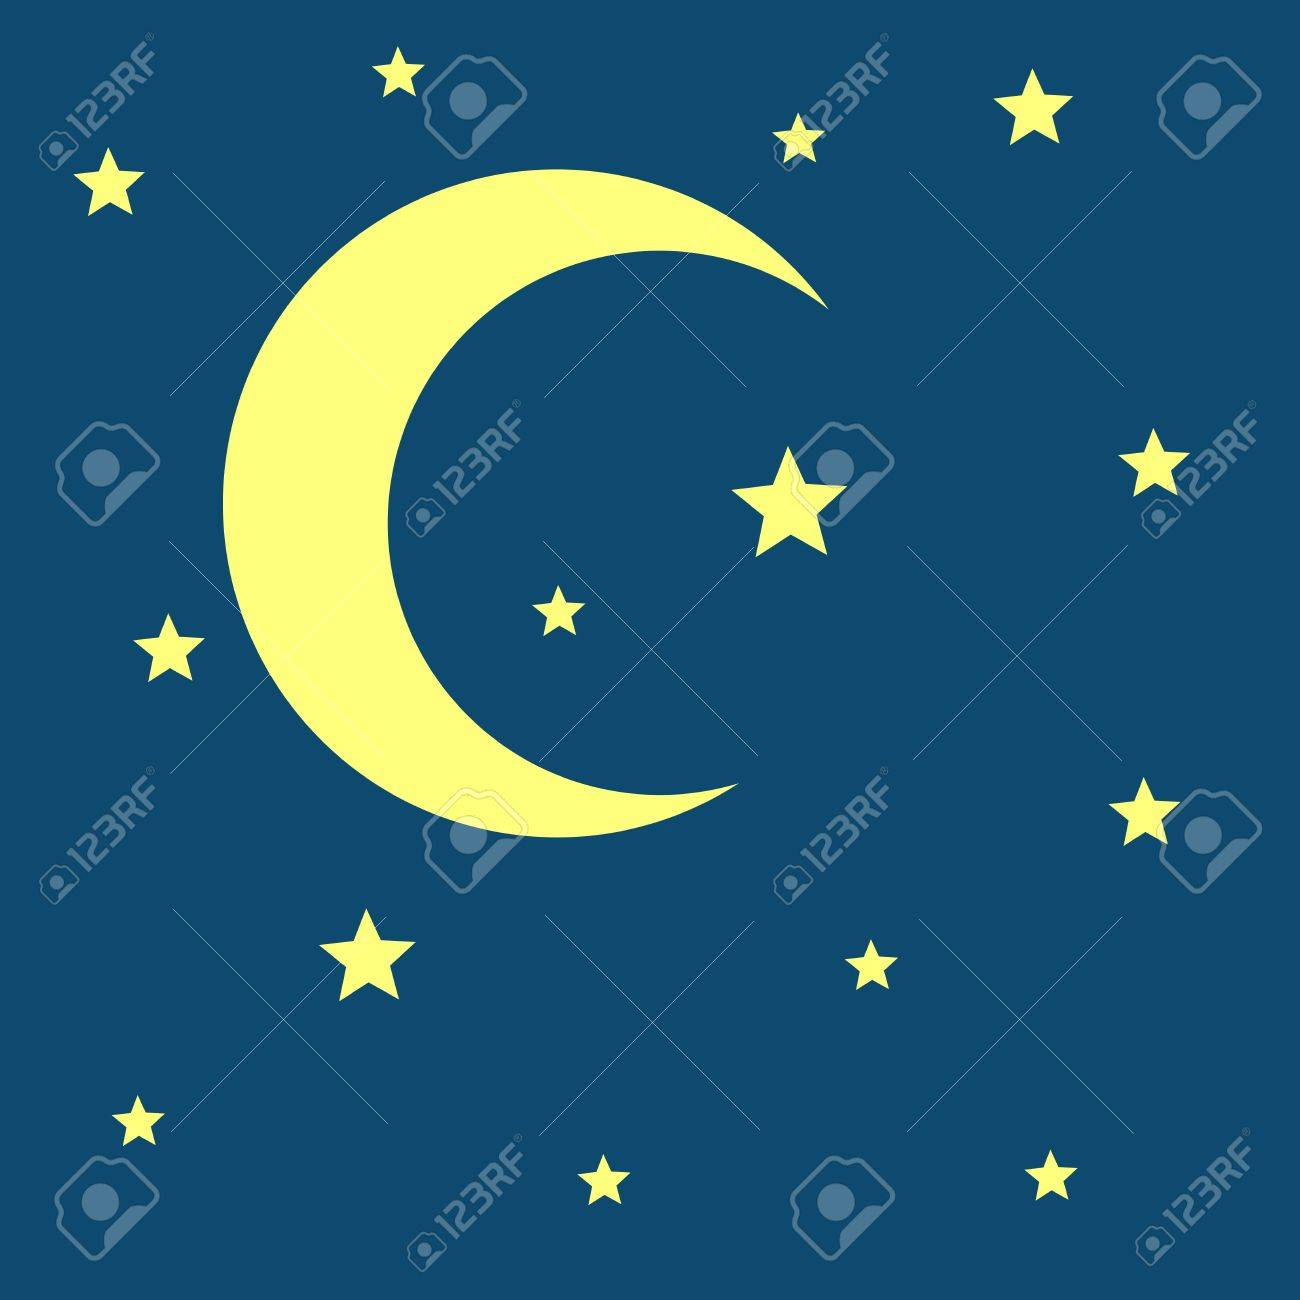 Vector crescent moon and stars night icon nature moonlight vector crescent moon and stars night icon nature moonlight illustration stock illustration 69605026 biocorpaavc Gallery